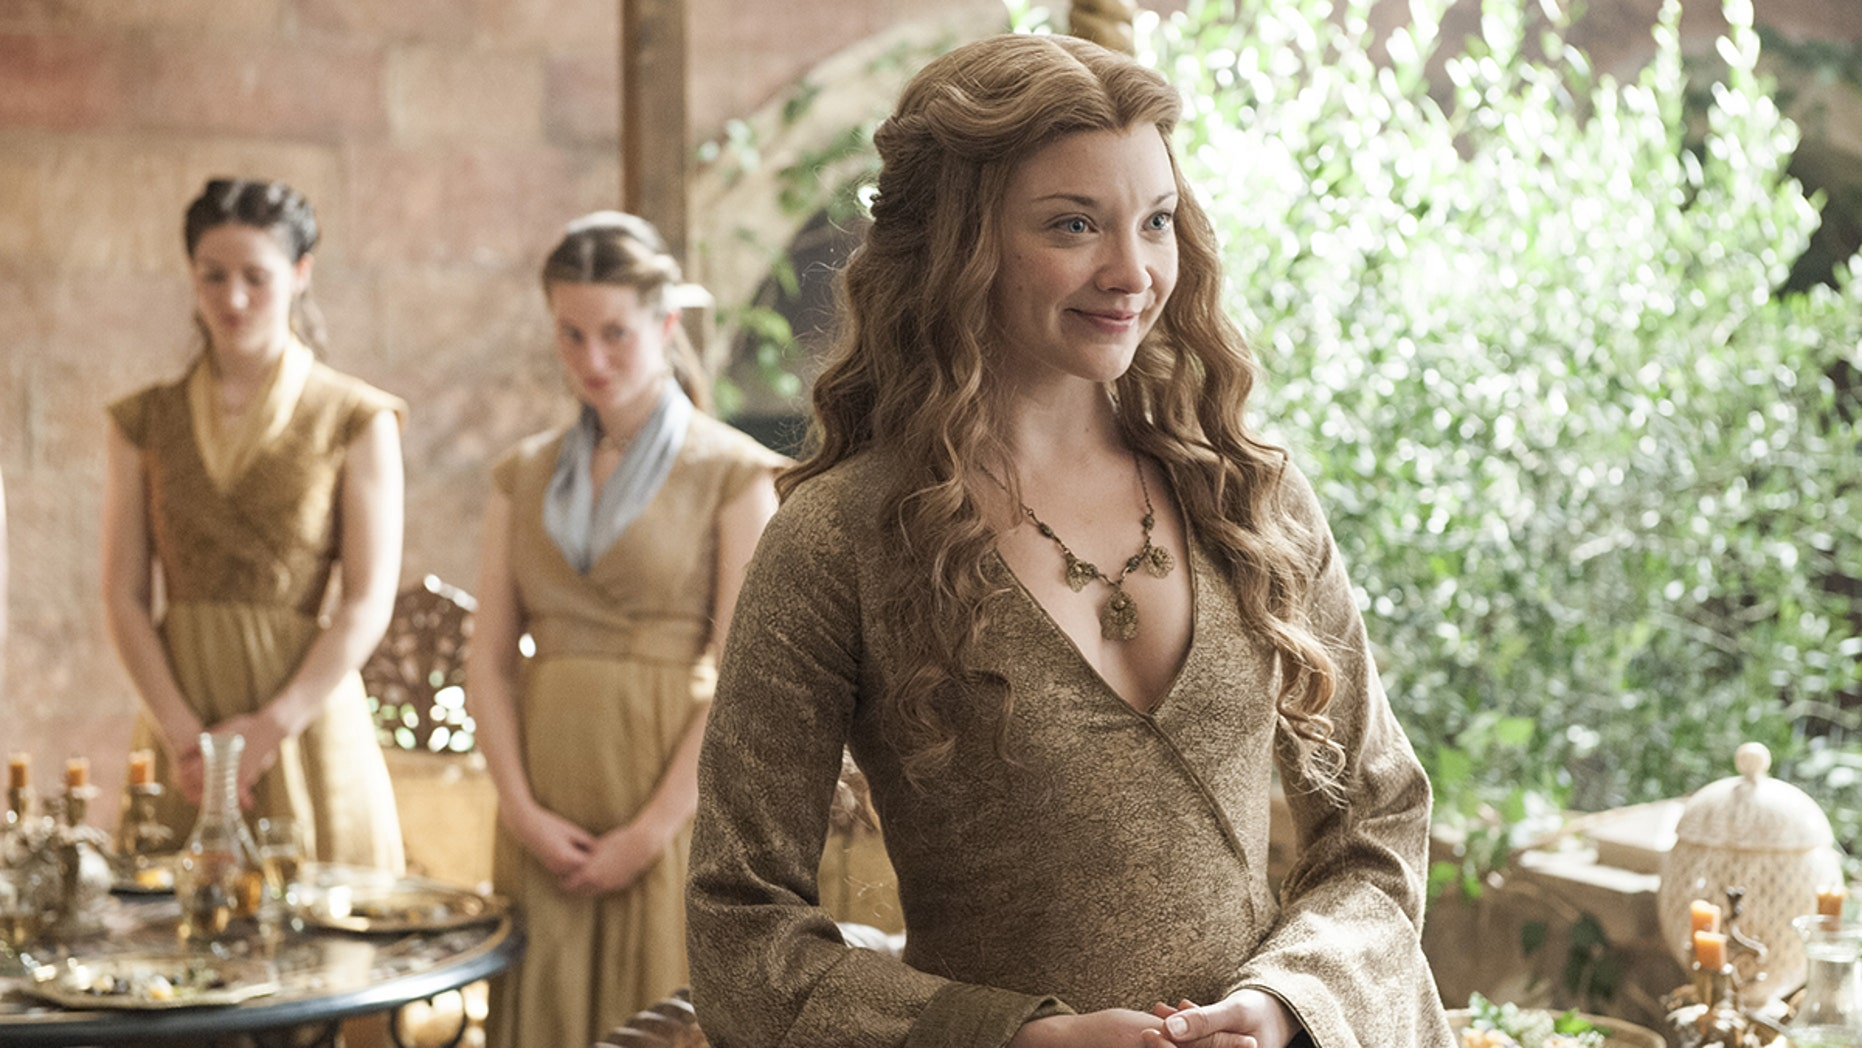 'Game of Thrones' star Natalie Dormer recently admitted that she knows the ending of the series.